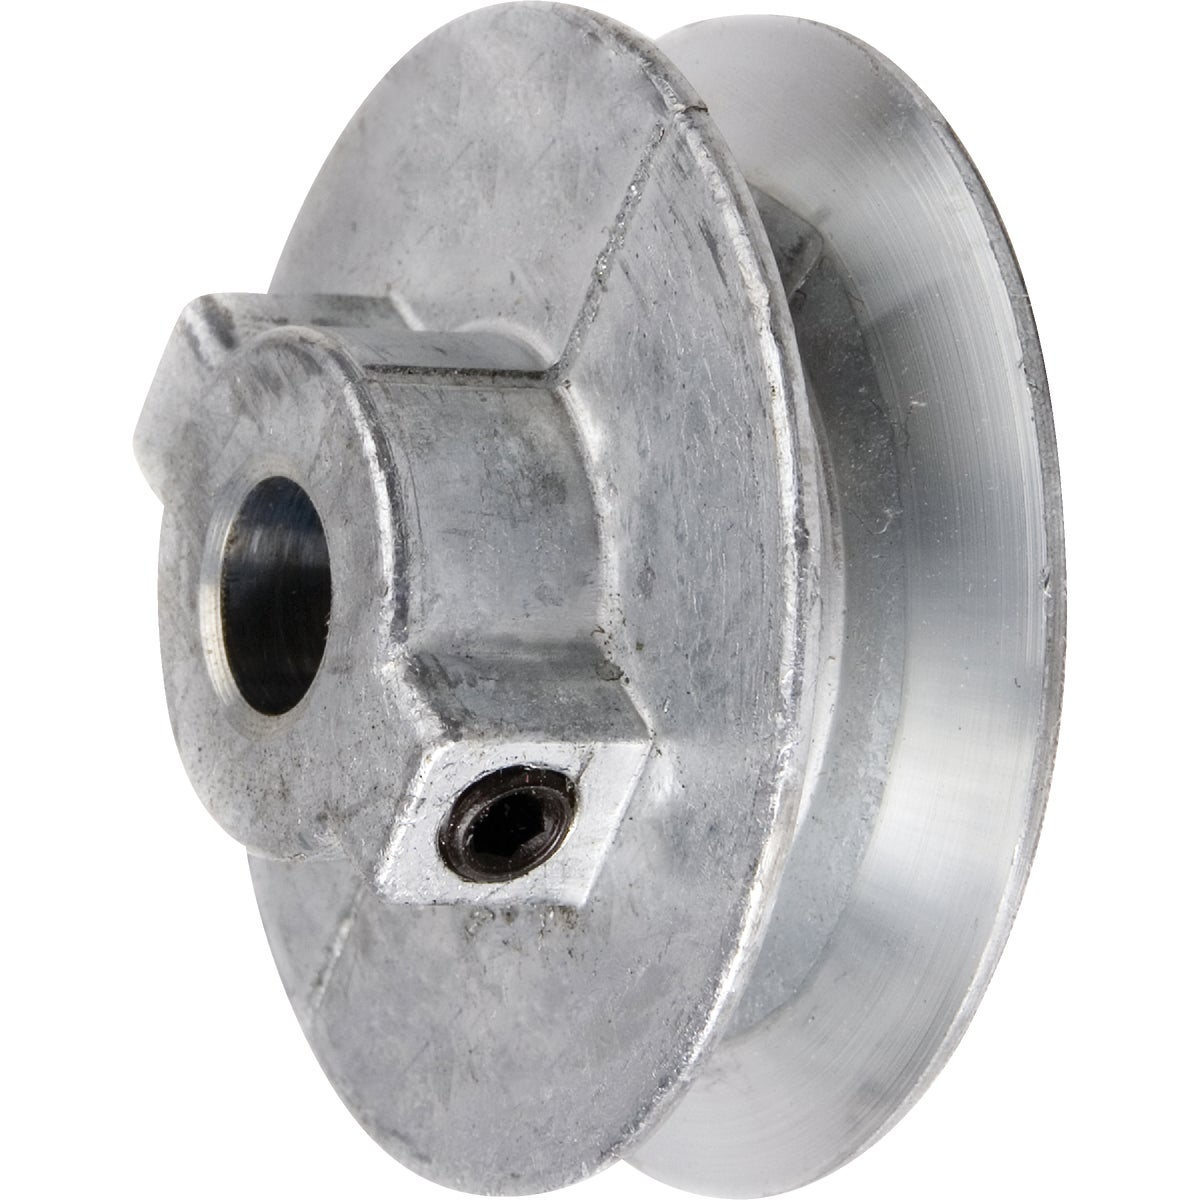 2-1/2X3/4 PULLEY